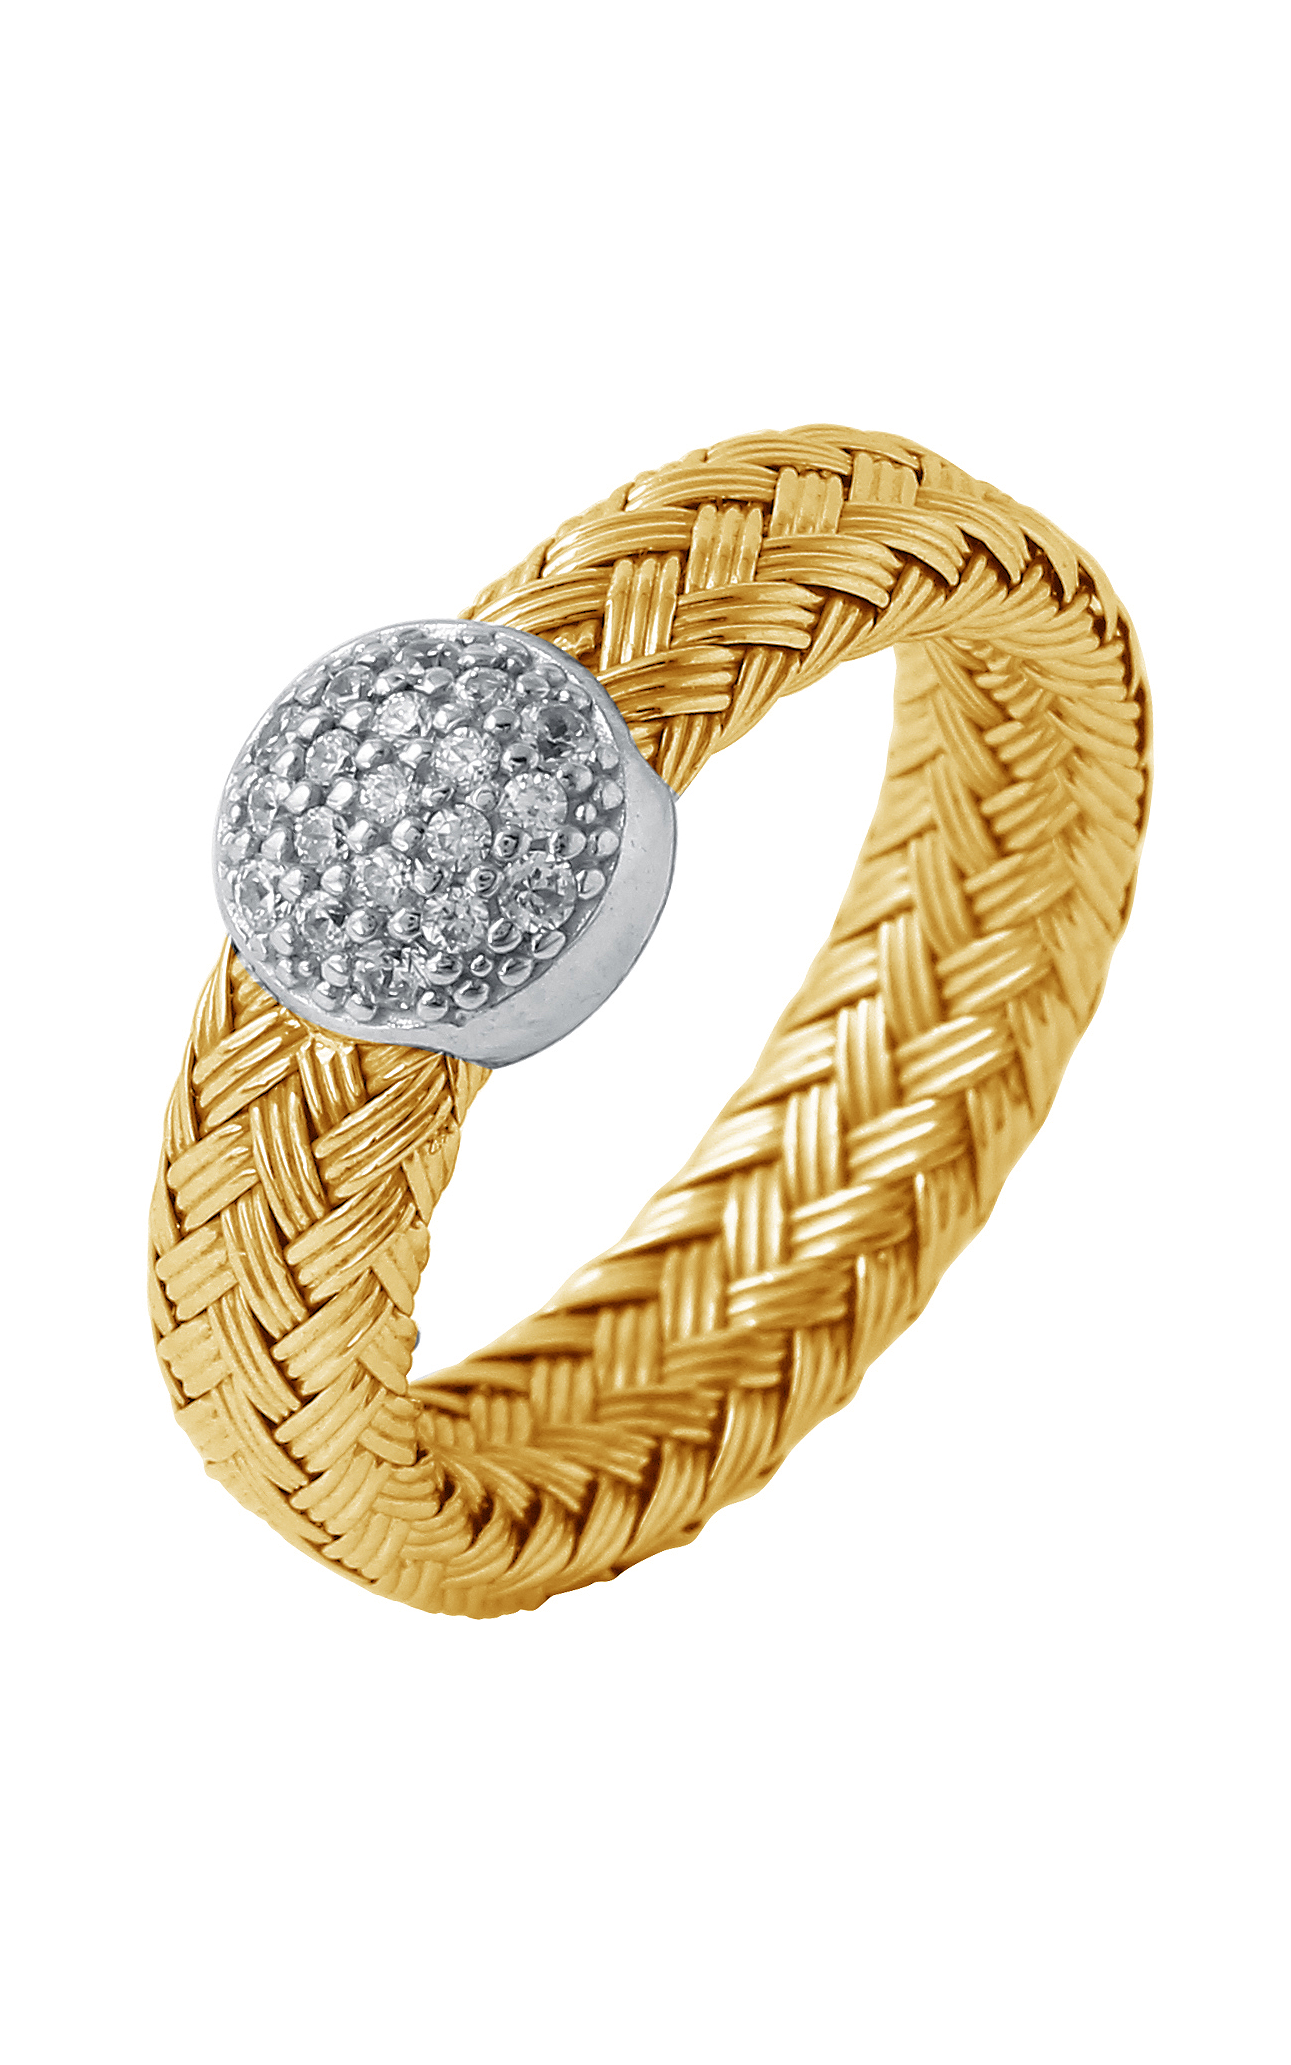 Charles Garnier Fashion Rings Fashion ring Paolo Collection MLR8062YWZ70 product image